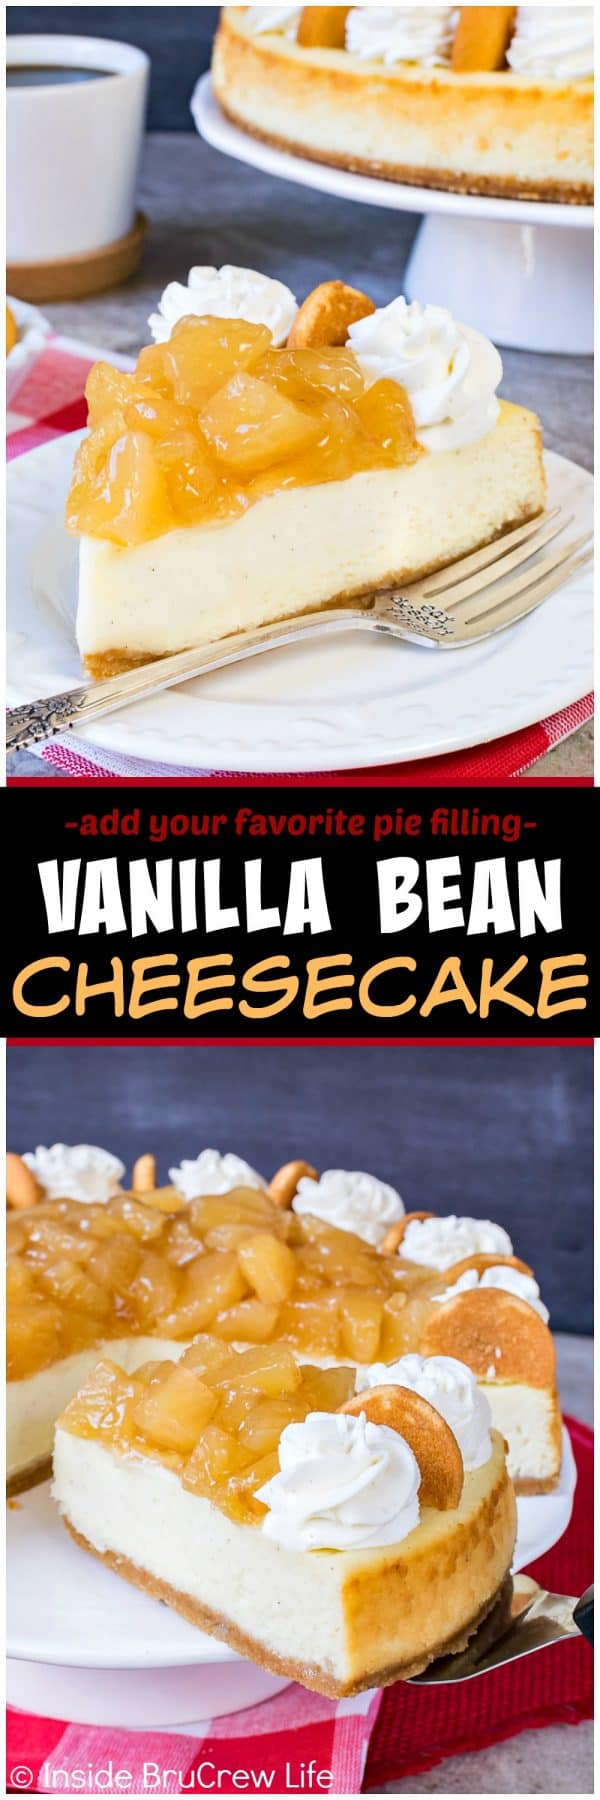 Vanilla Bean Cheesecake - this easy creamy cheesecake is loaded with vanilla flavor. Top it with your favorite pie filling and homemade vanilla bean whipped topping. Great recipe for dinner parties!